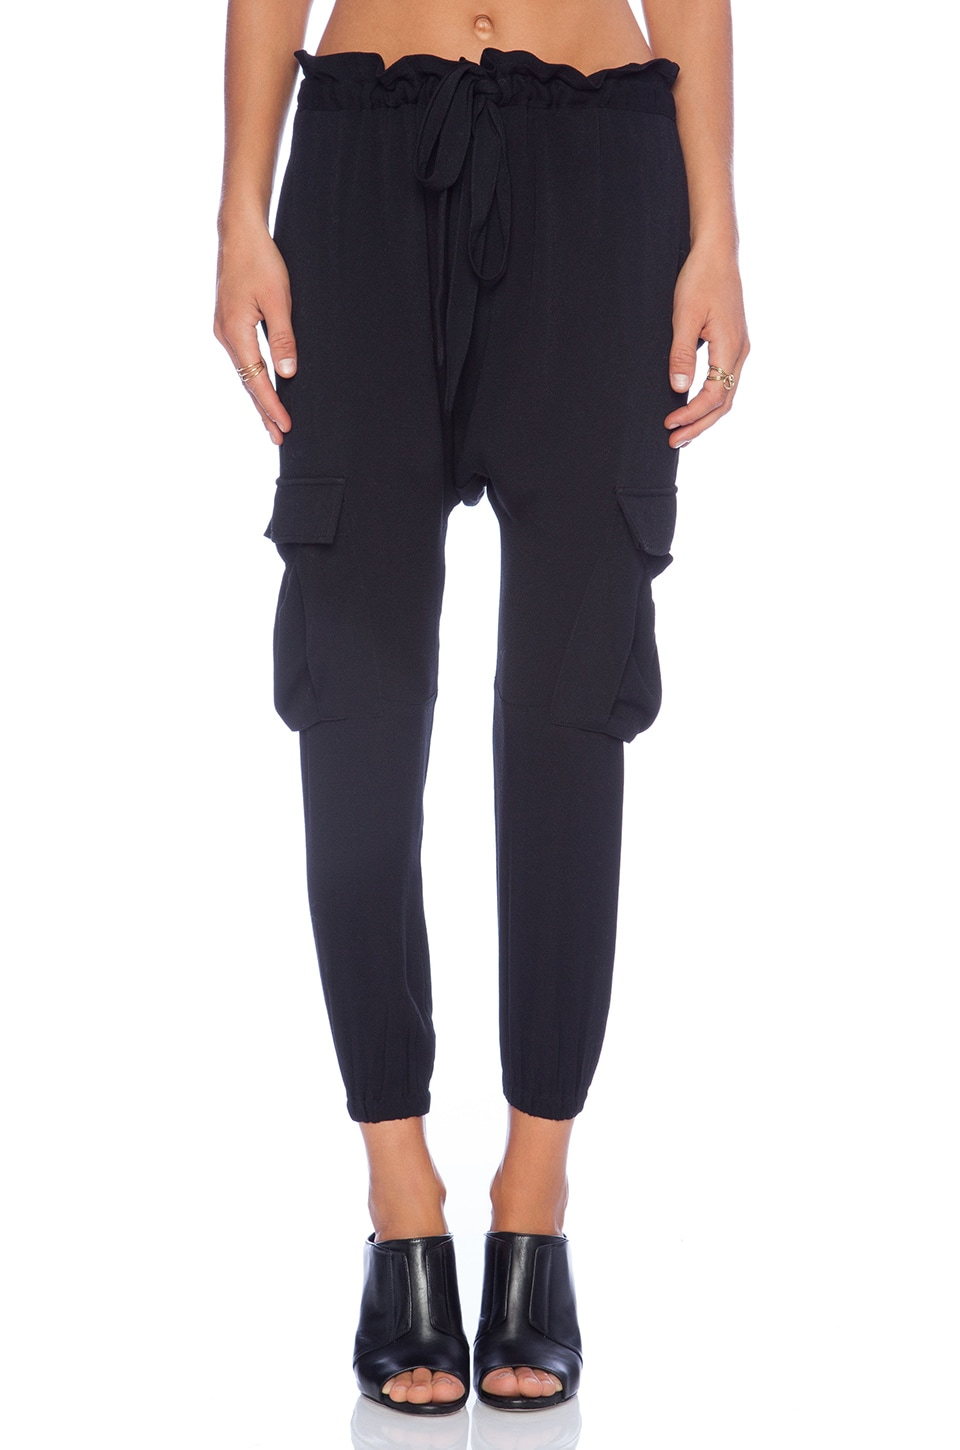 Ulla Johnson Army Pant in Jet